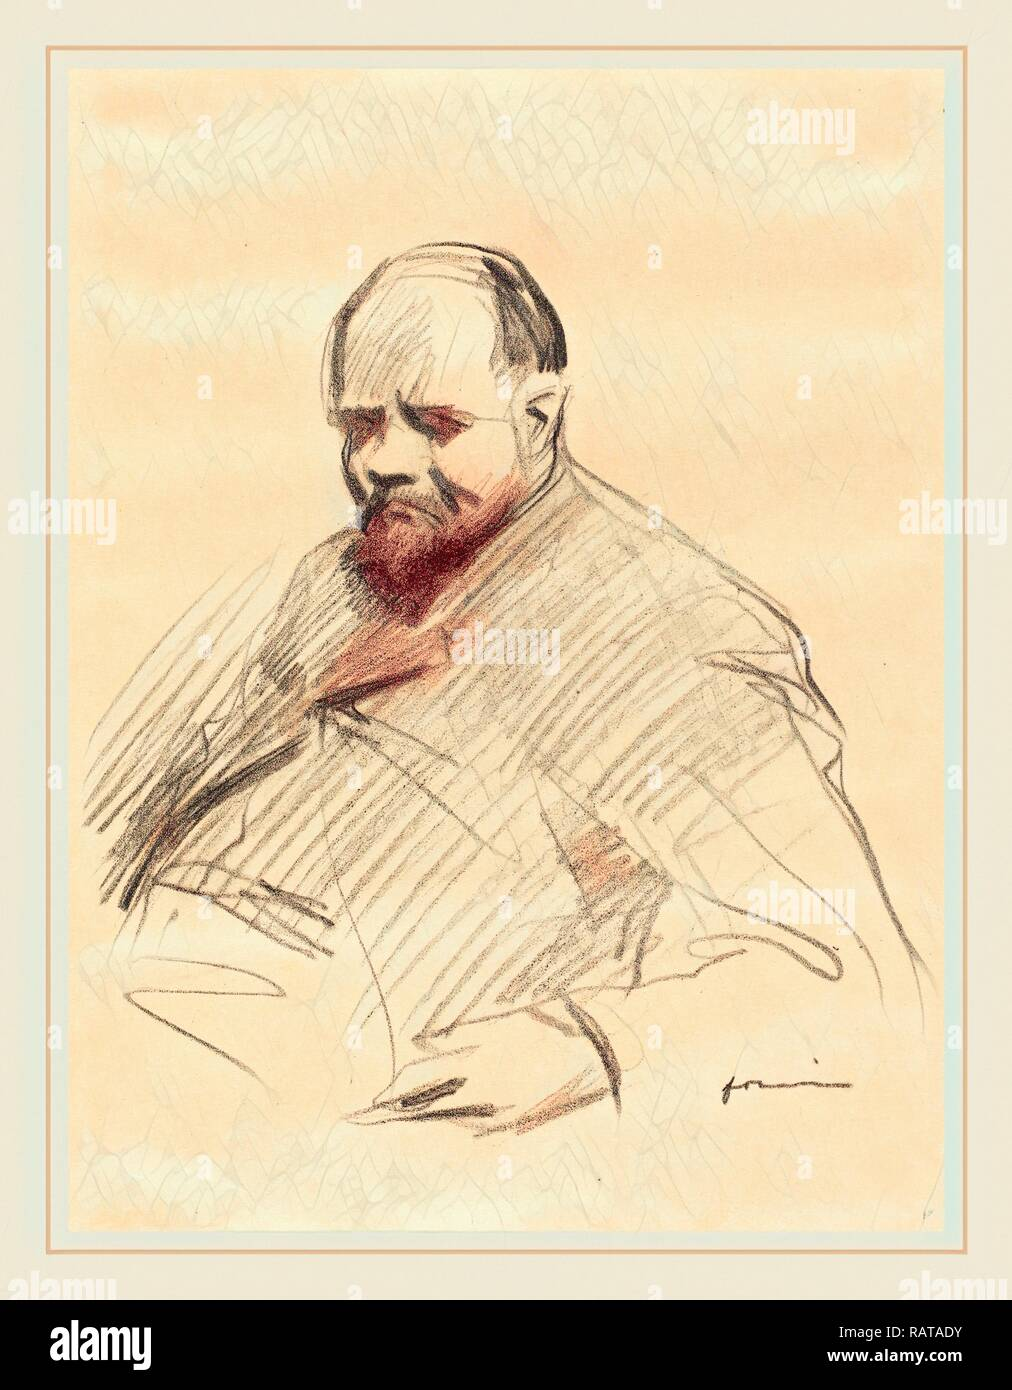 Jean-Louis Forain, Ambroise Vollard, French, 1852-1931, c. 1910, lithograph. Reimagined by Gibon. Classic art with a reimagined - Stock Image